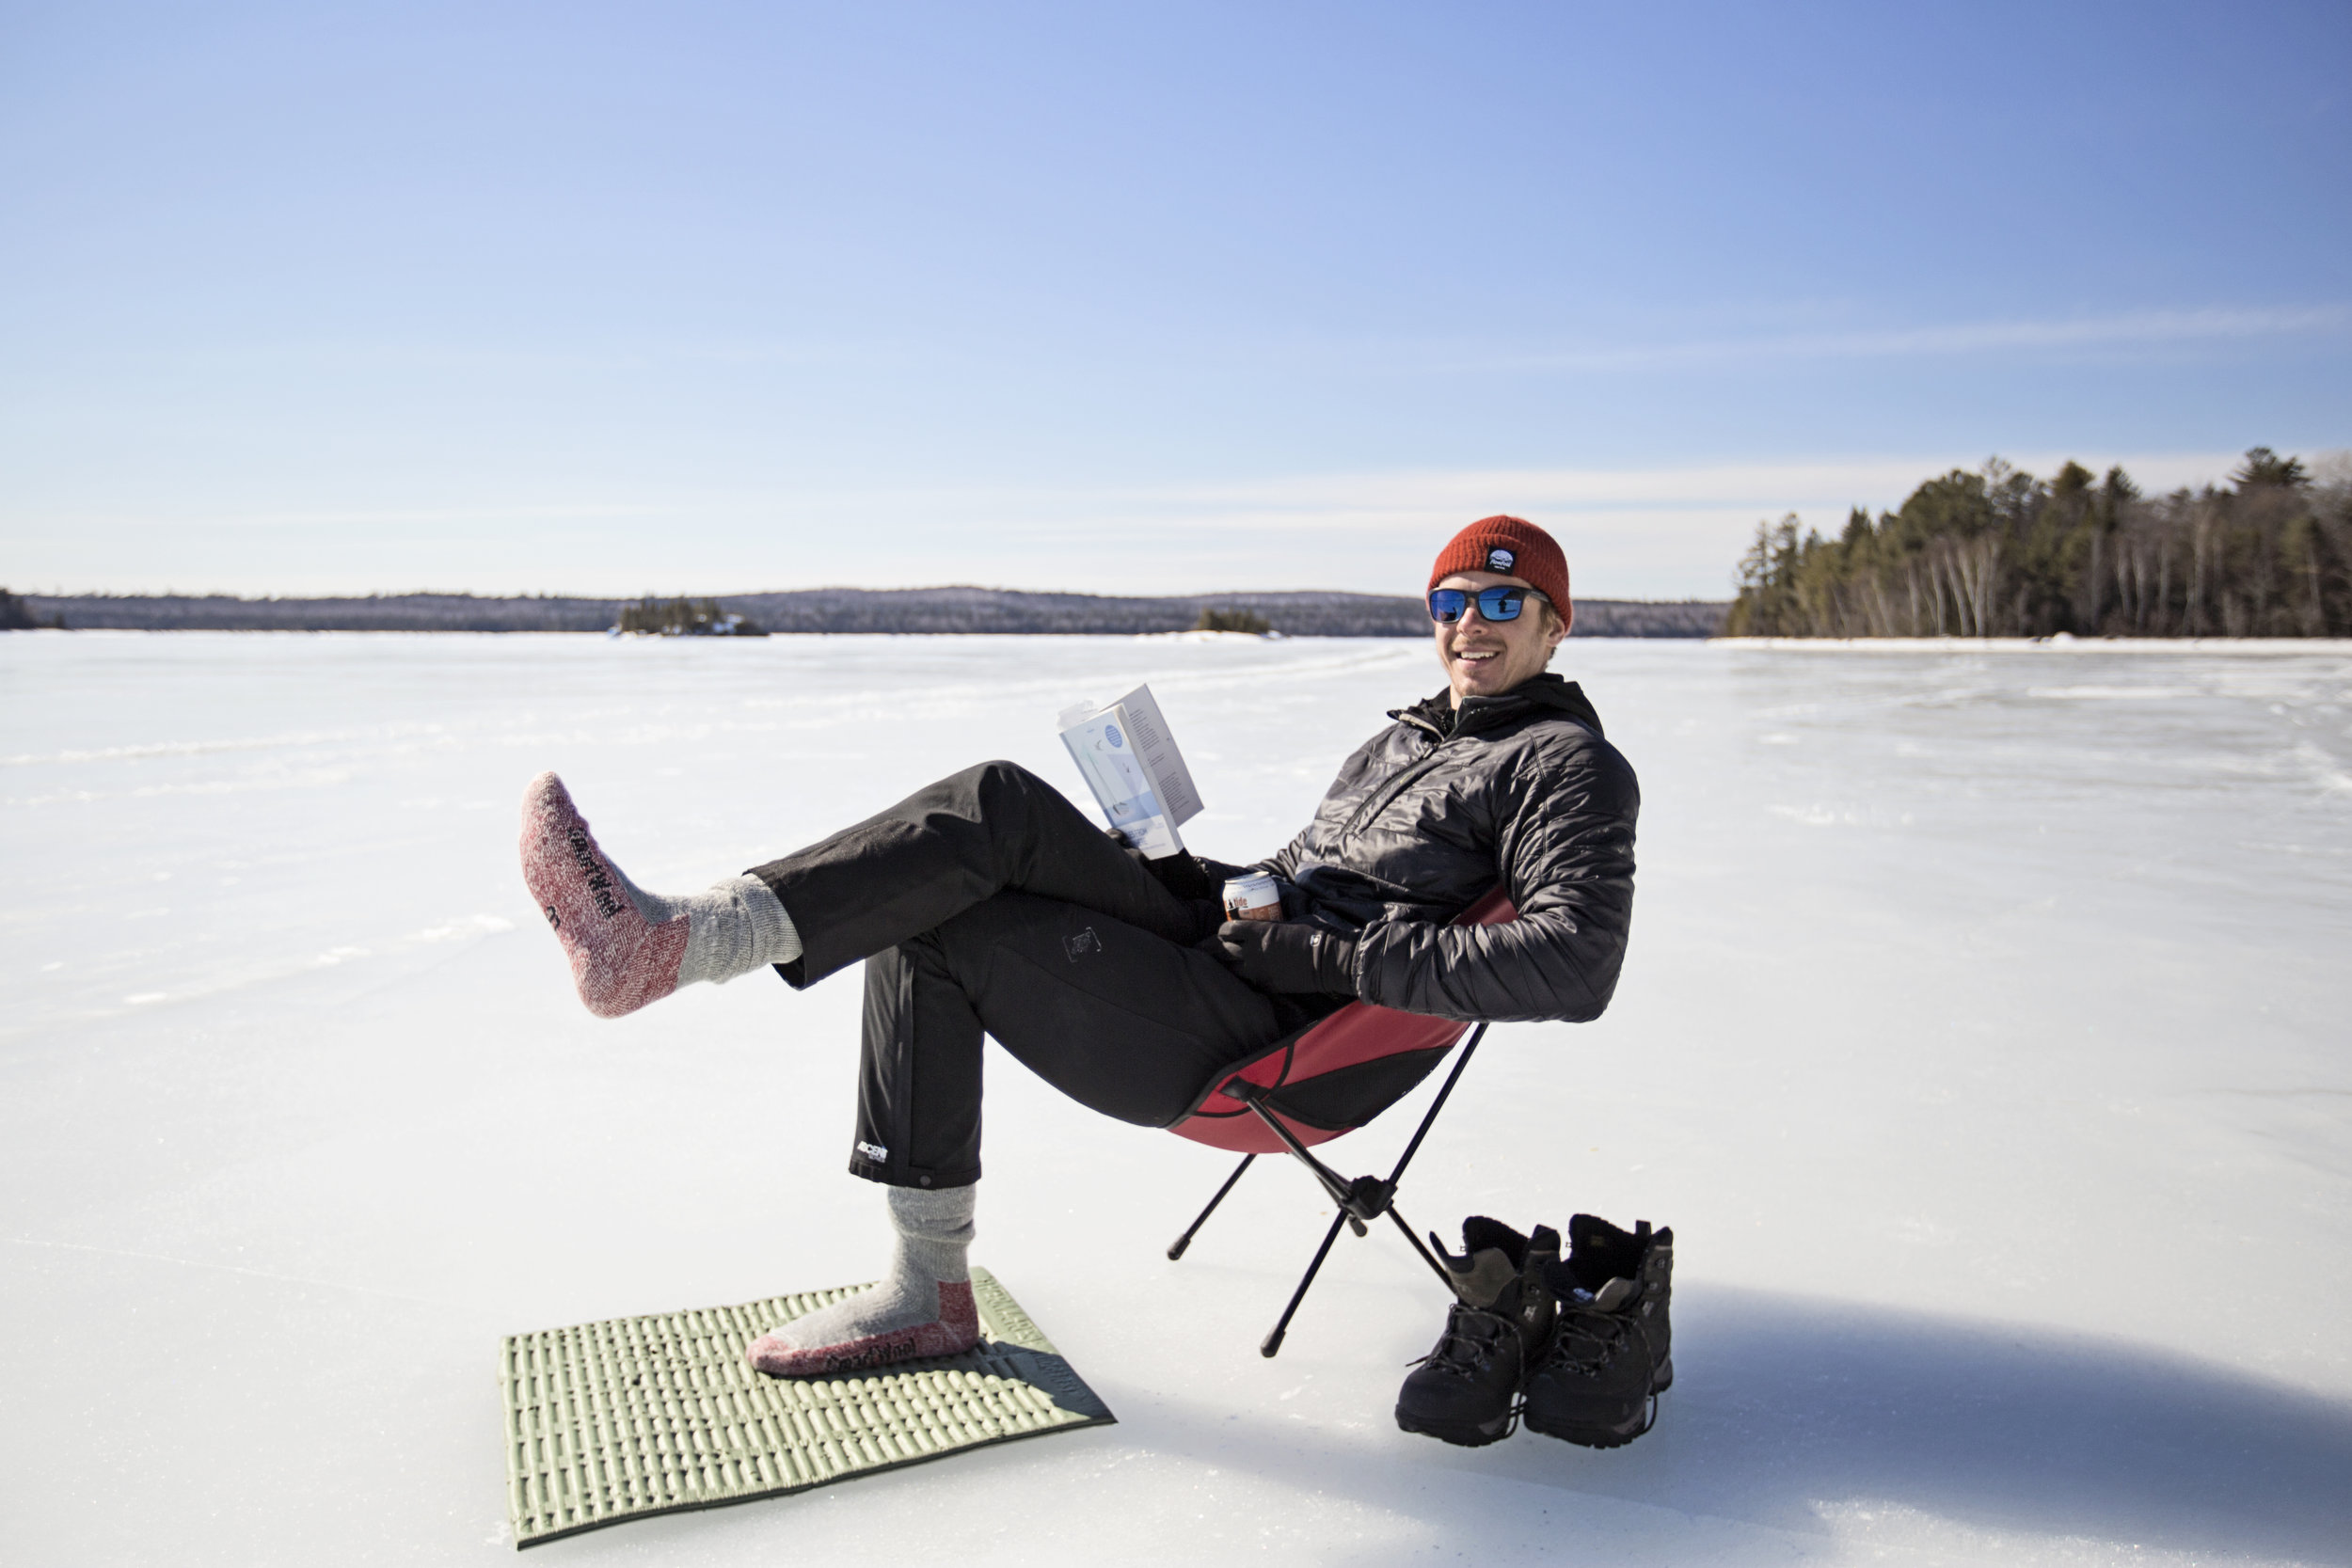 Taking a break on the ice. The temps got well above freezing on the tail end of our trip.